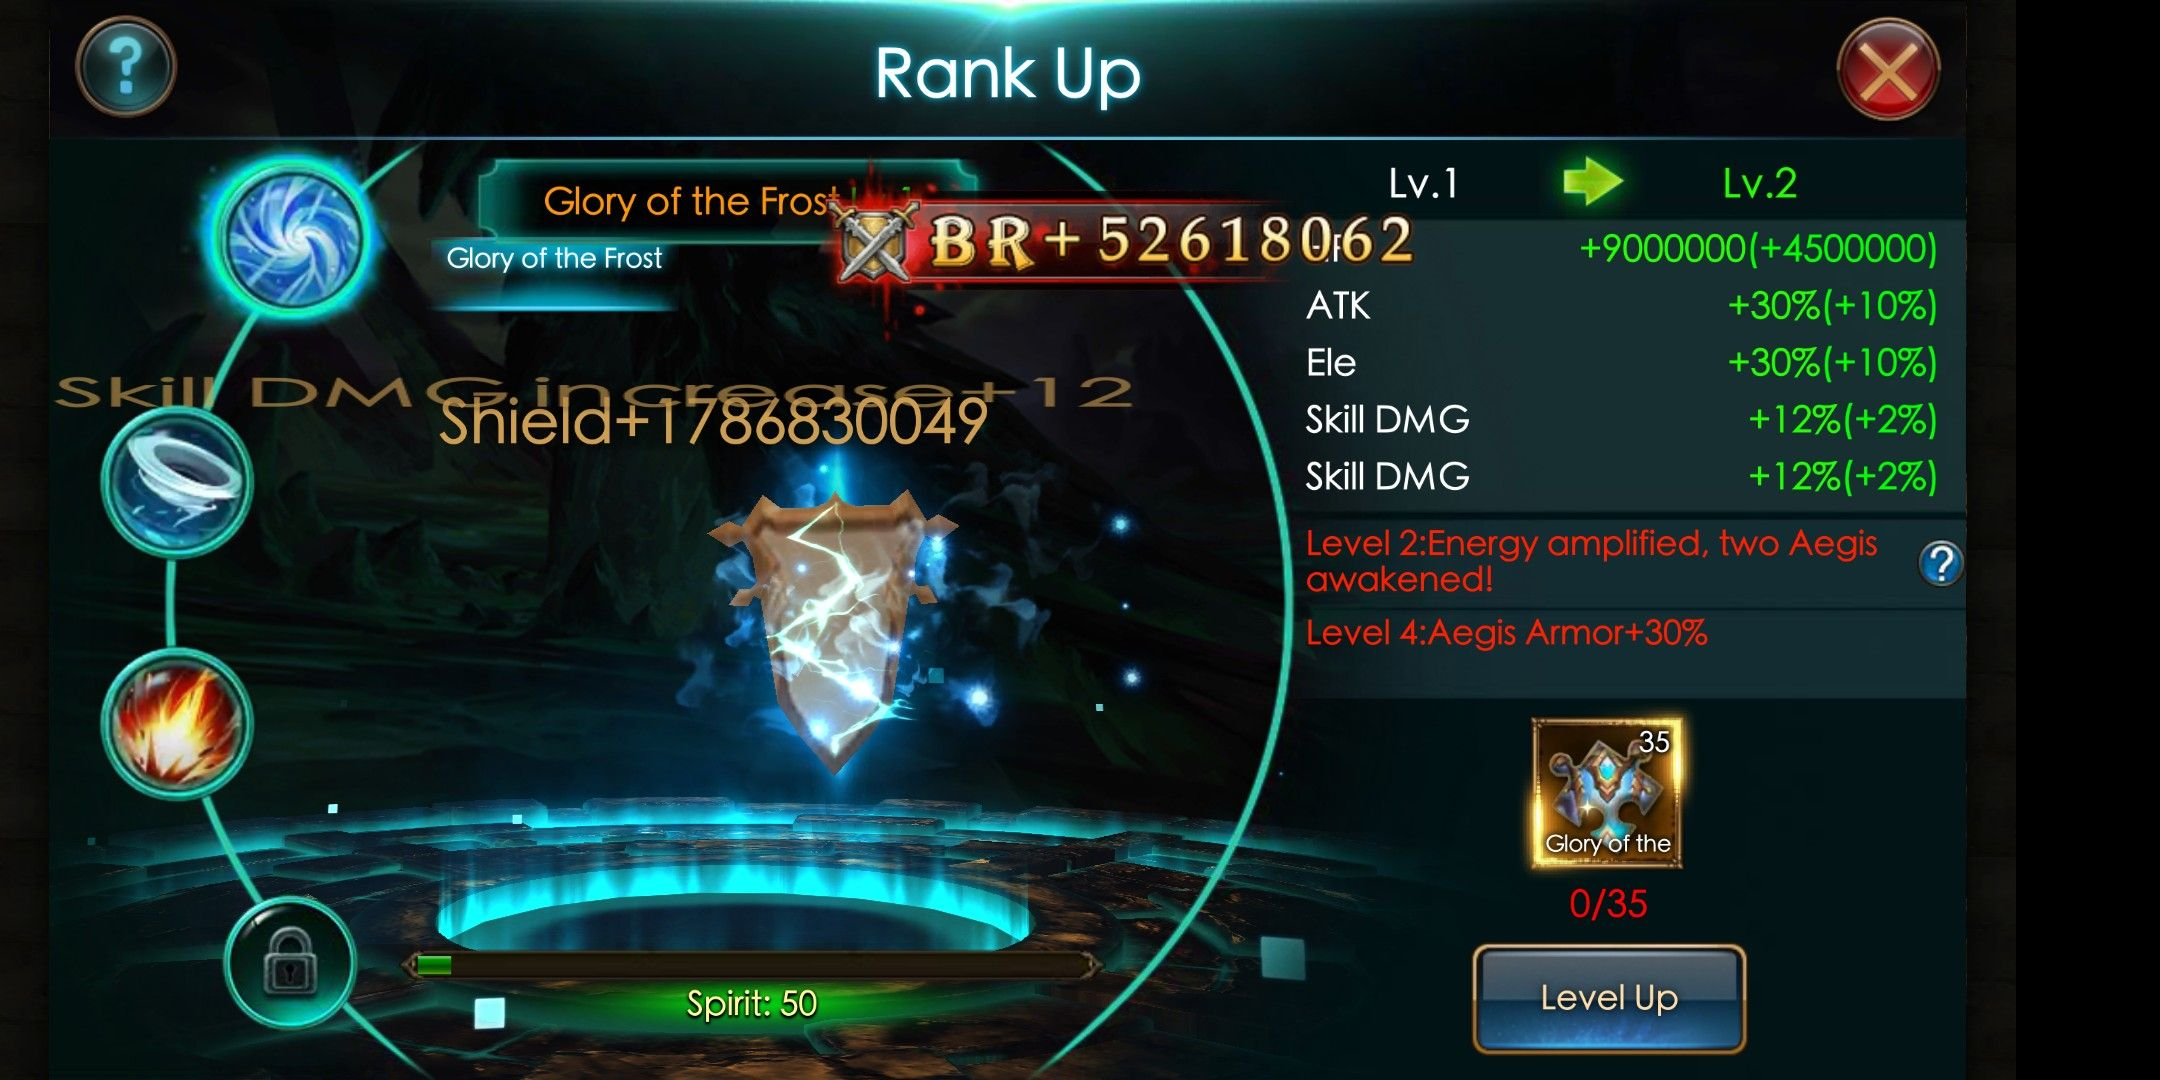 How much BR do you get from activating Glory of the Frost? I